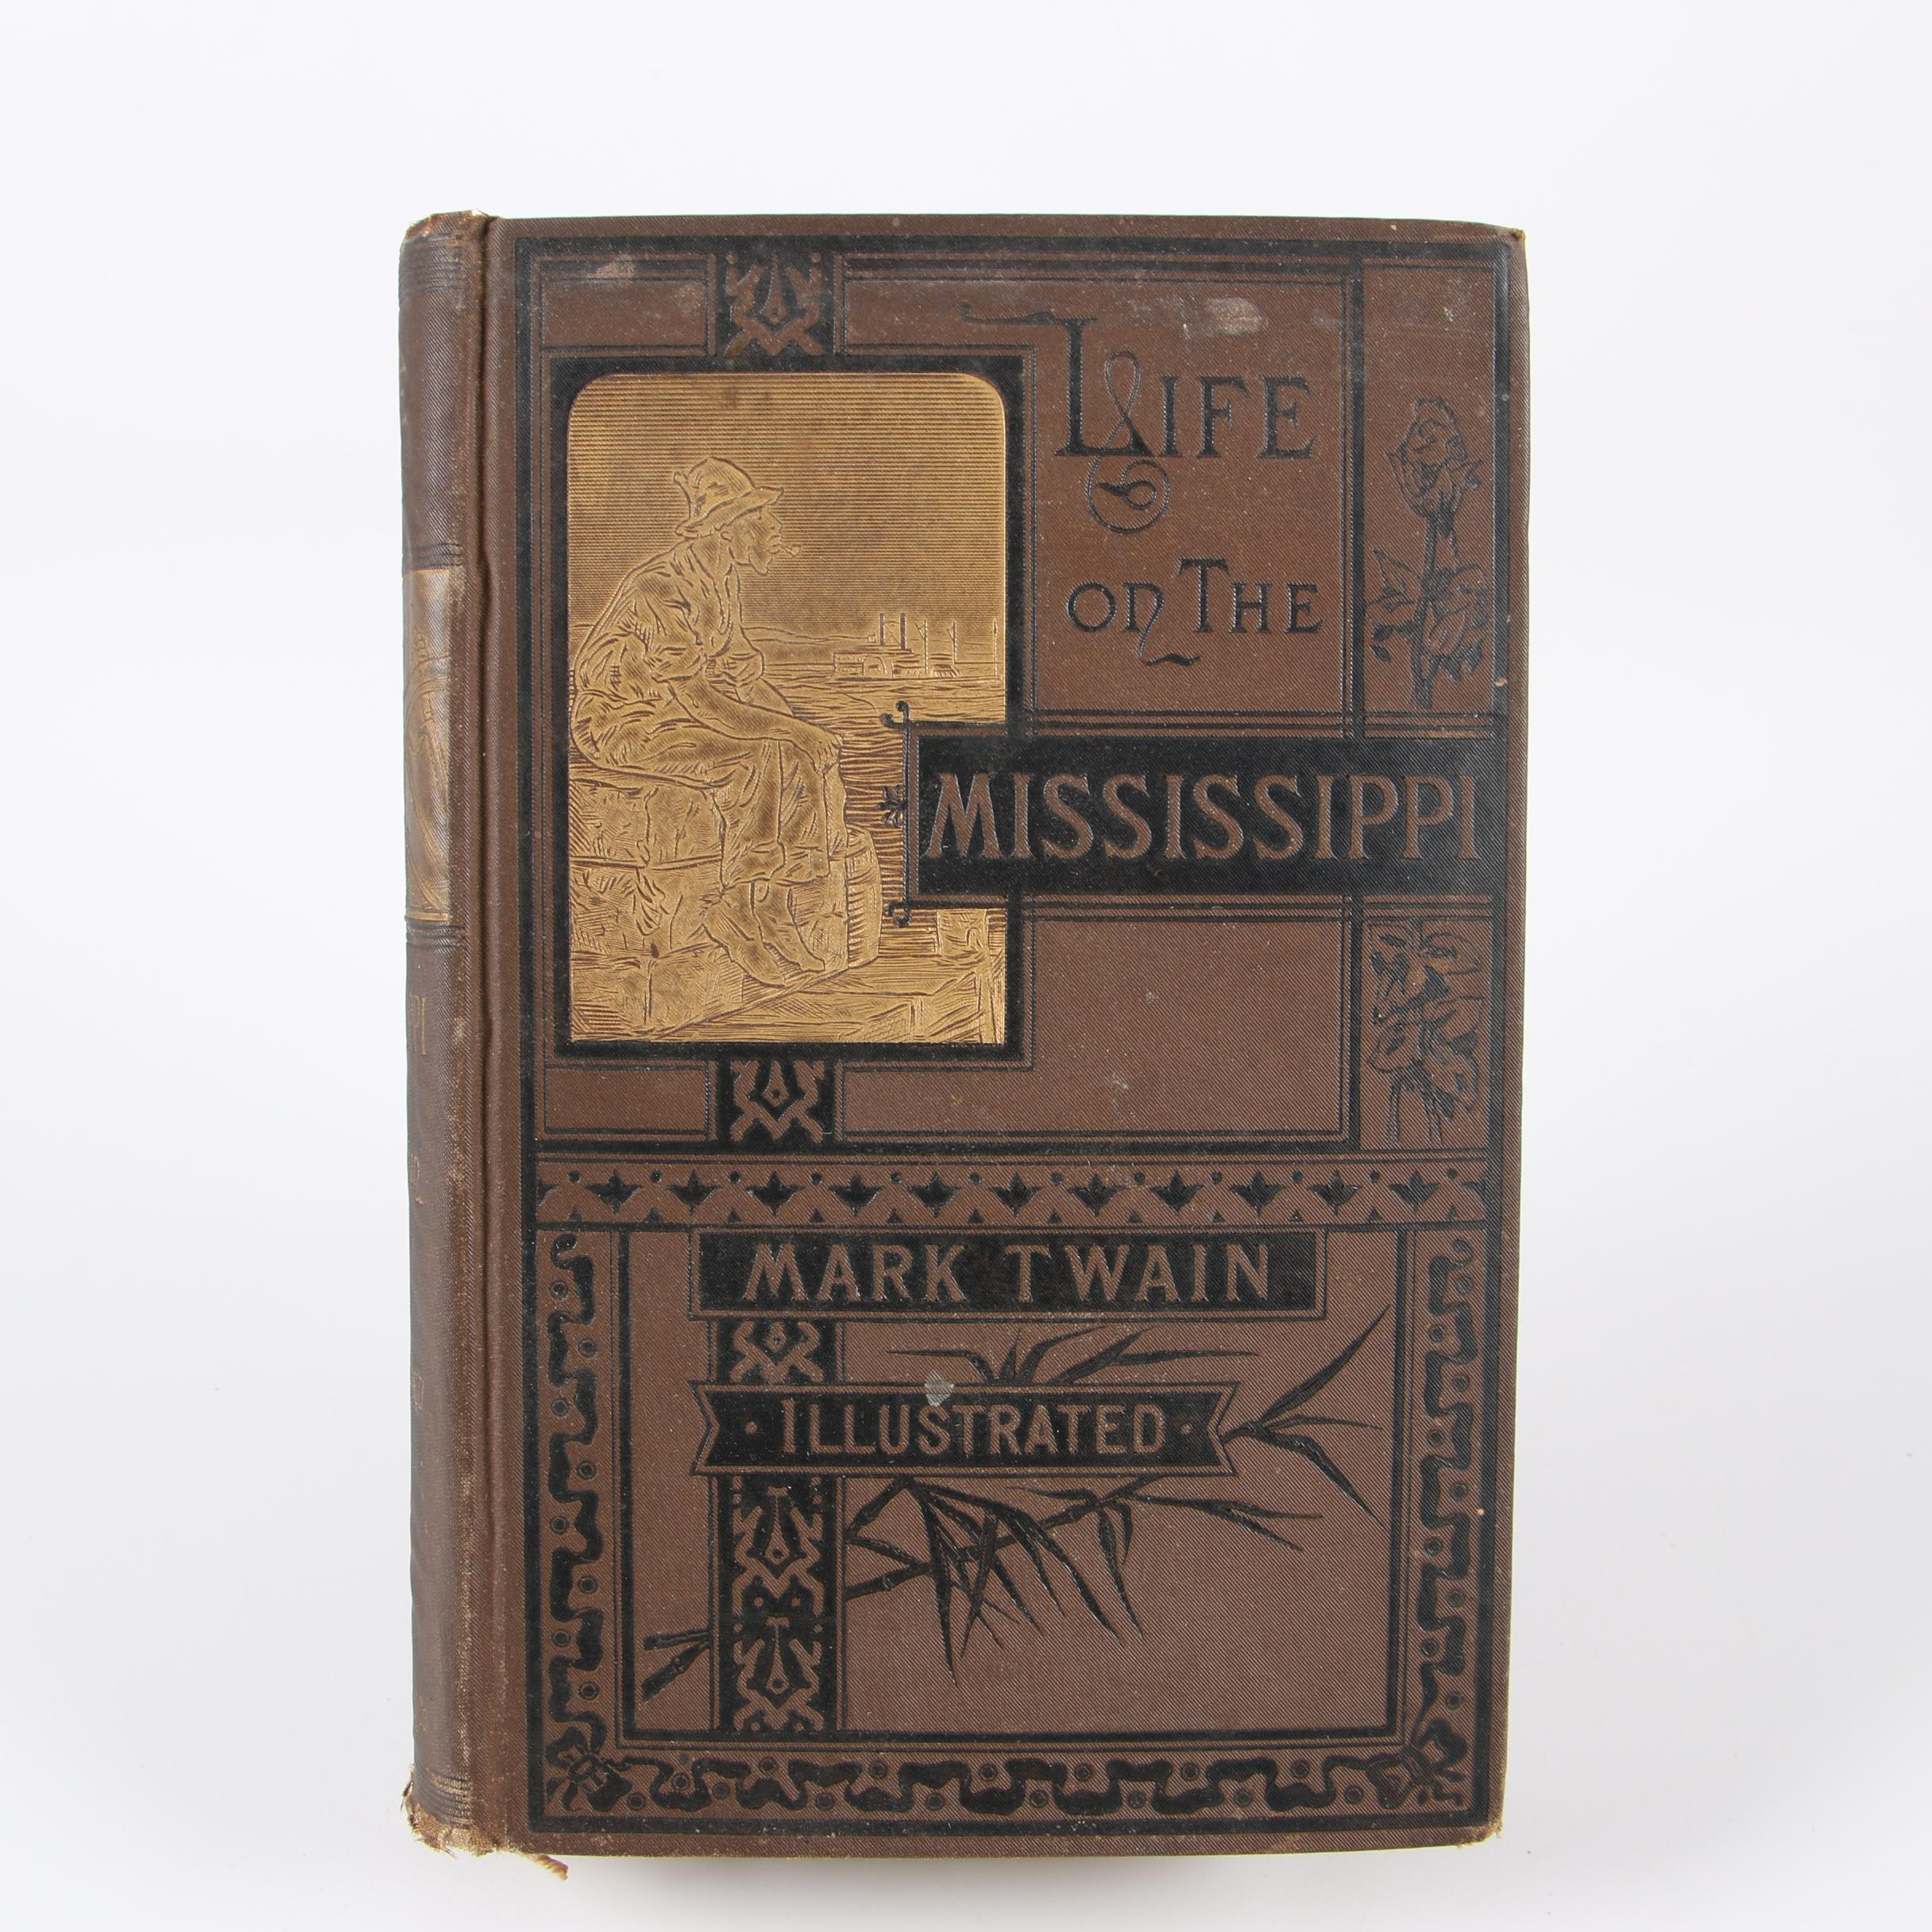 """""""Life on the Mississippi"""" by Mark Twain, 1883 Early Printing"""